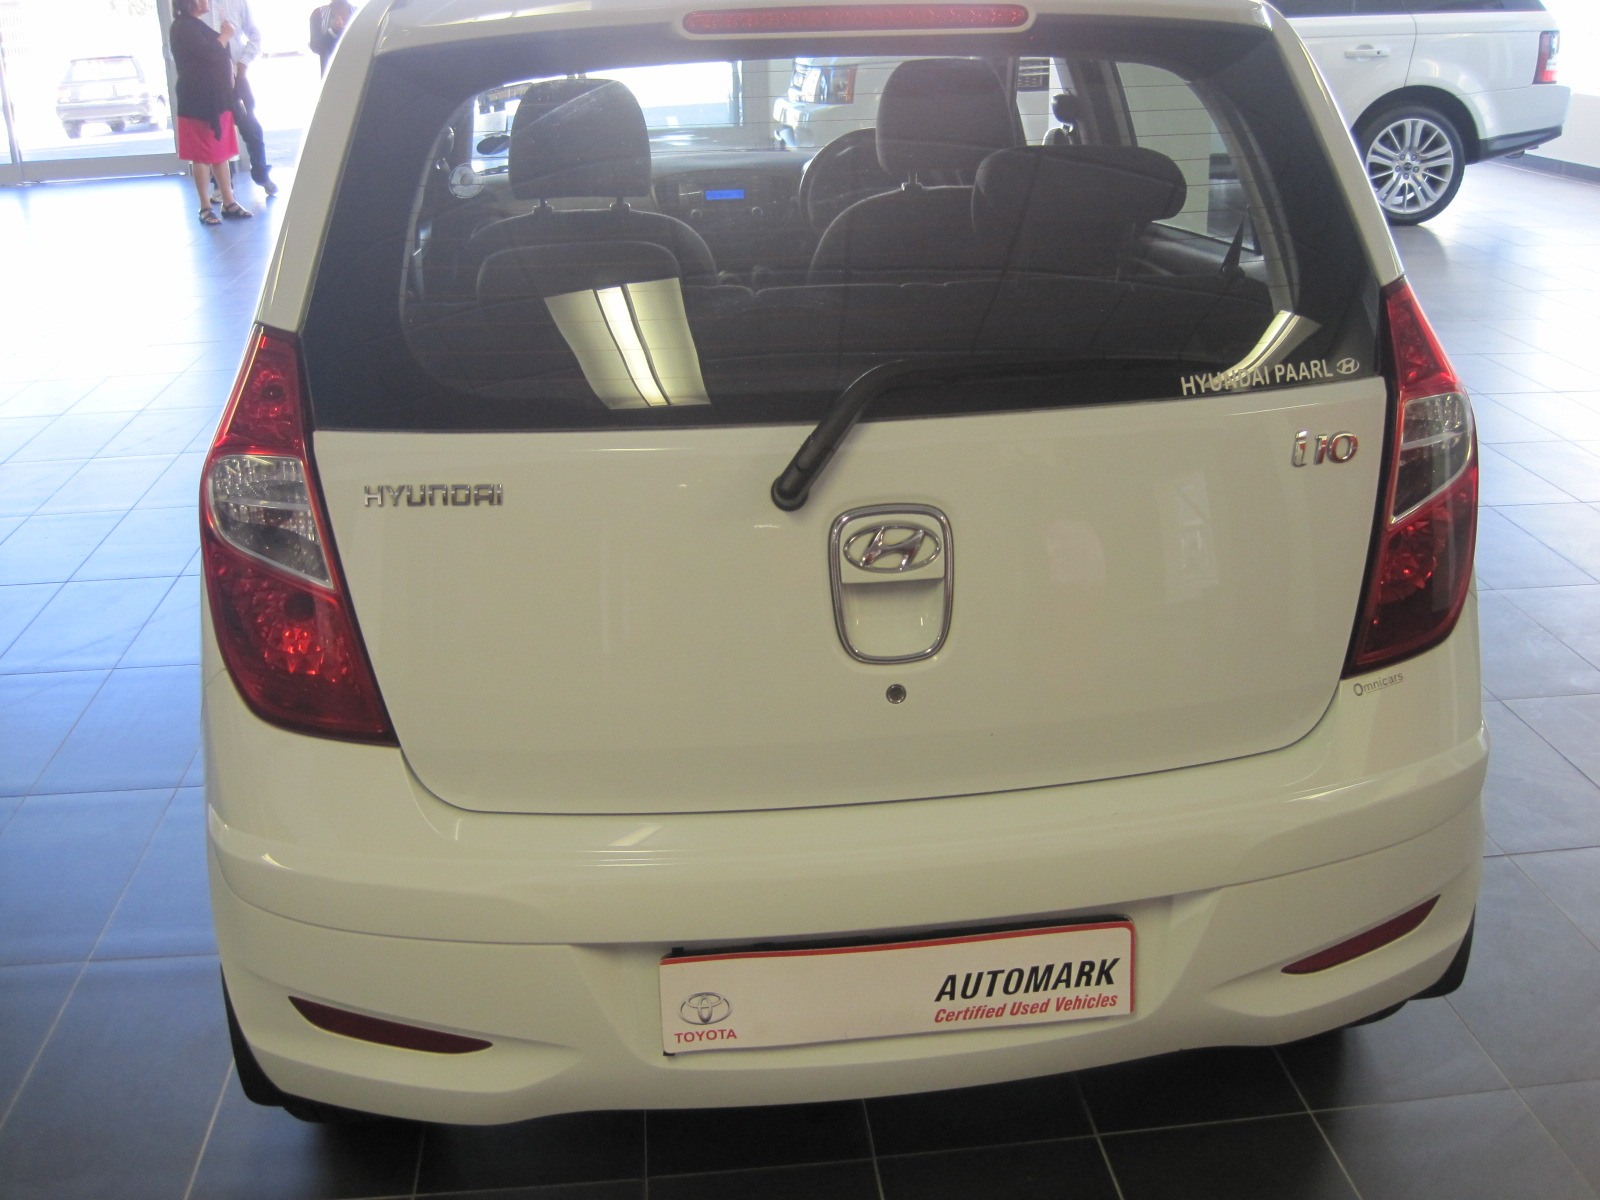 Used and new Hyundai Gumtree Used Vehicles for Sale Cars